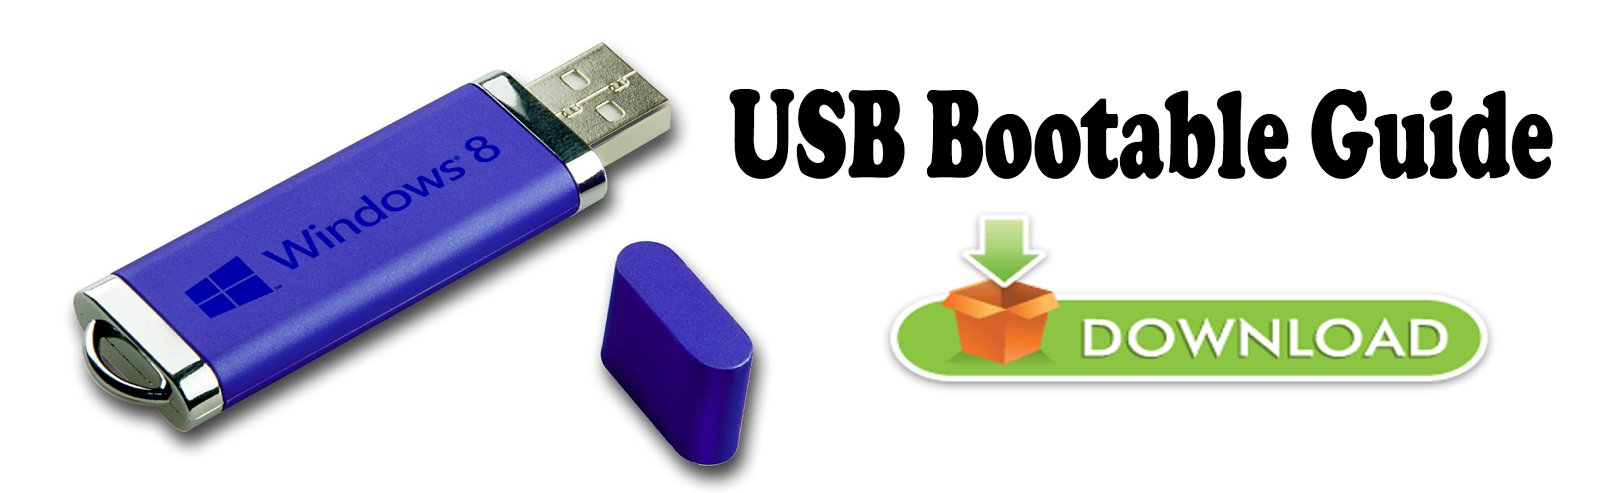 USB Bootable Guide